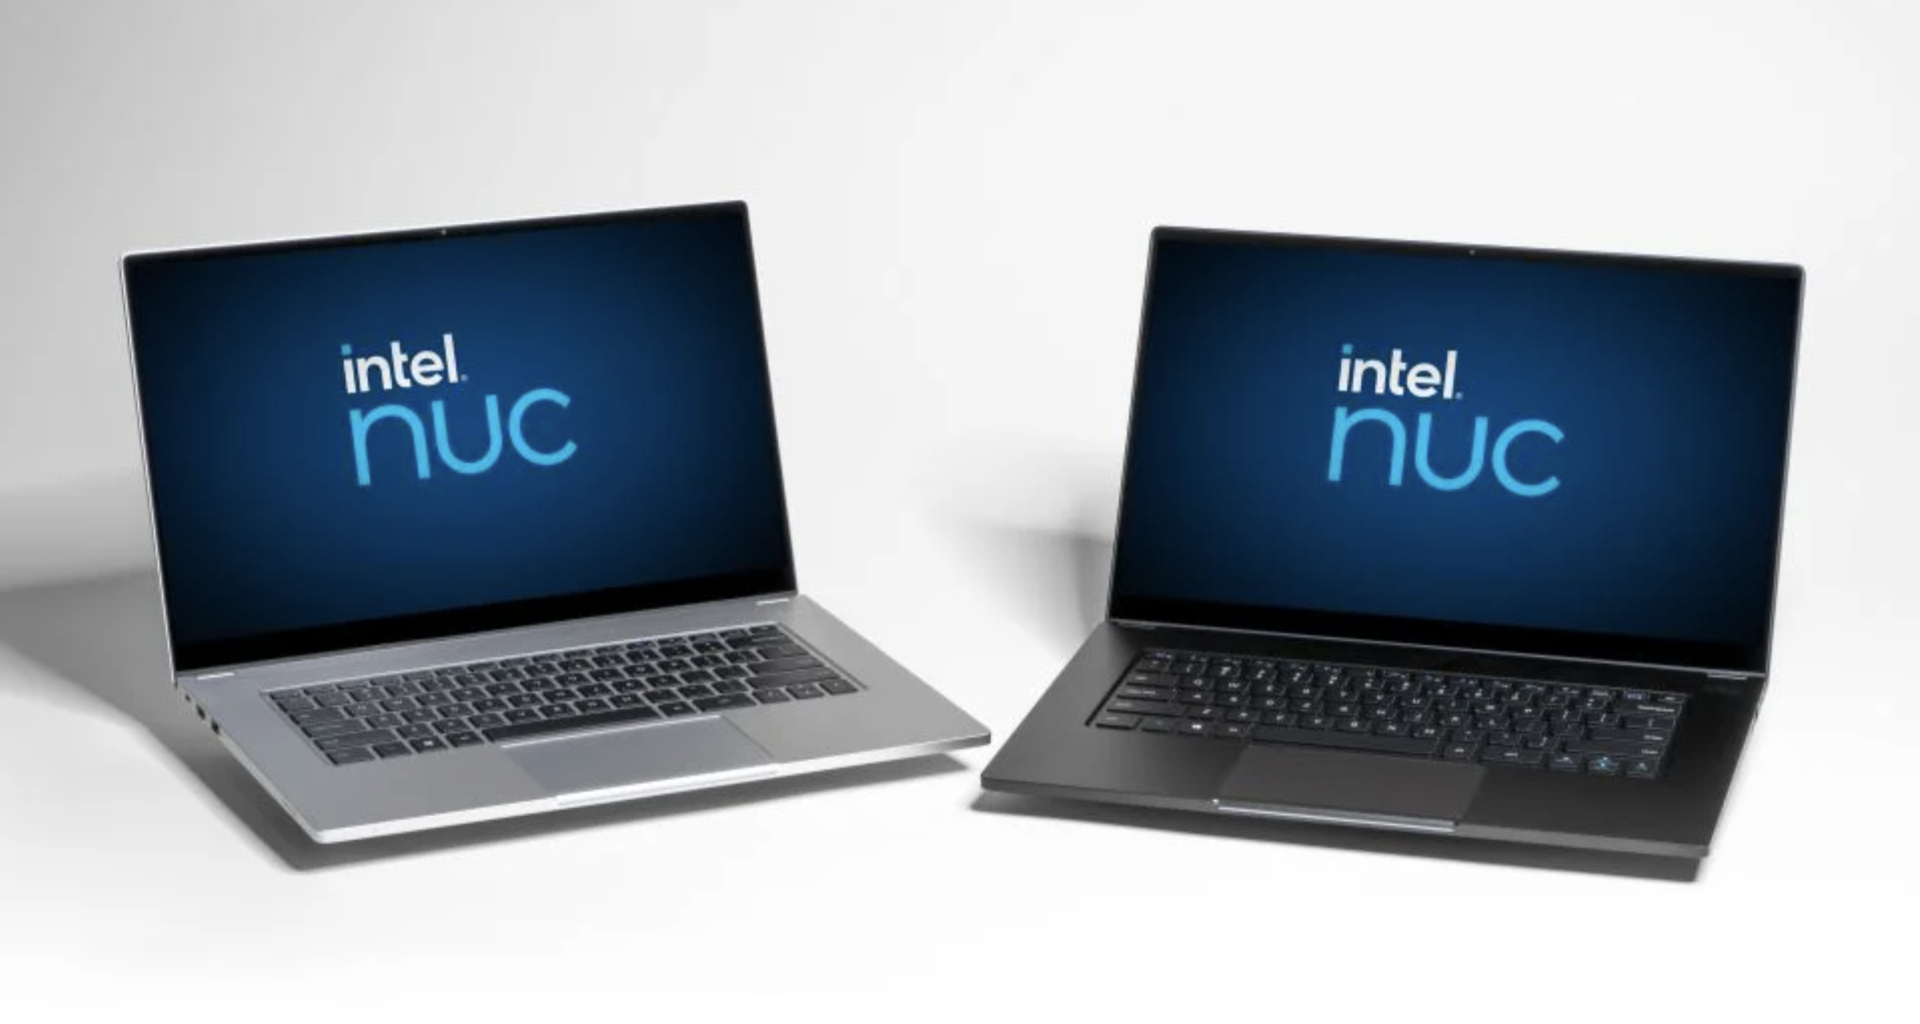 Intel unveils NUC M15 laptop with Core i7 CPU, Iris Xe graphics, and 16 GB RAM